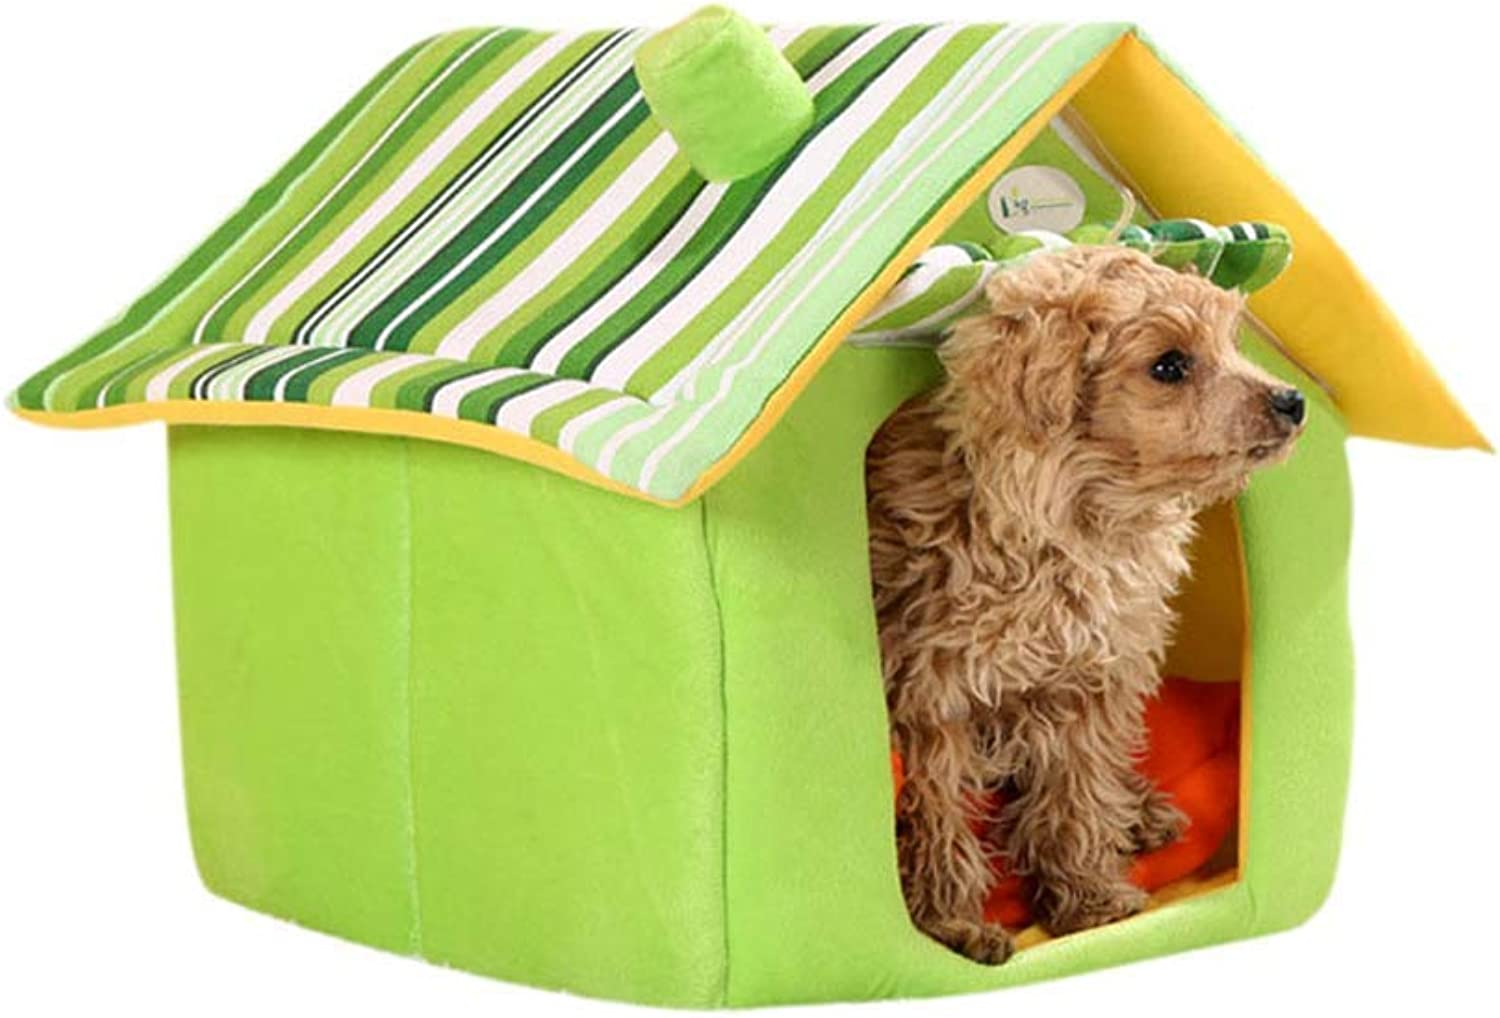 Dog House, Kennel Suitable For Small And Mediumsized Dog Pet Nest, Cat Nest Dog Mat Winter Washable Dog Bed  Brown, Yellow, bluee (S, M, L, Xl) (color   GREEN, Size   M)